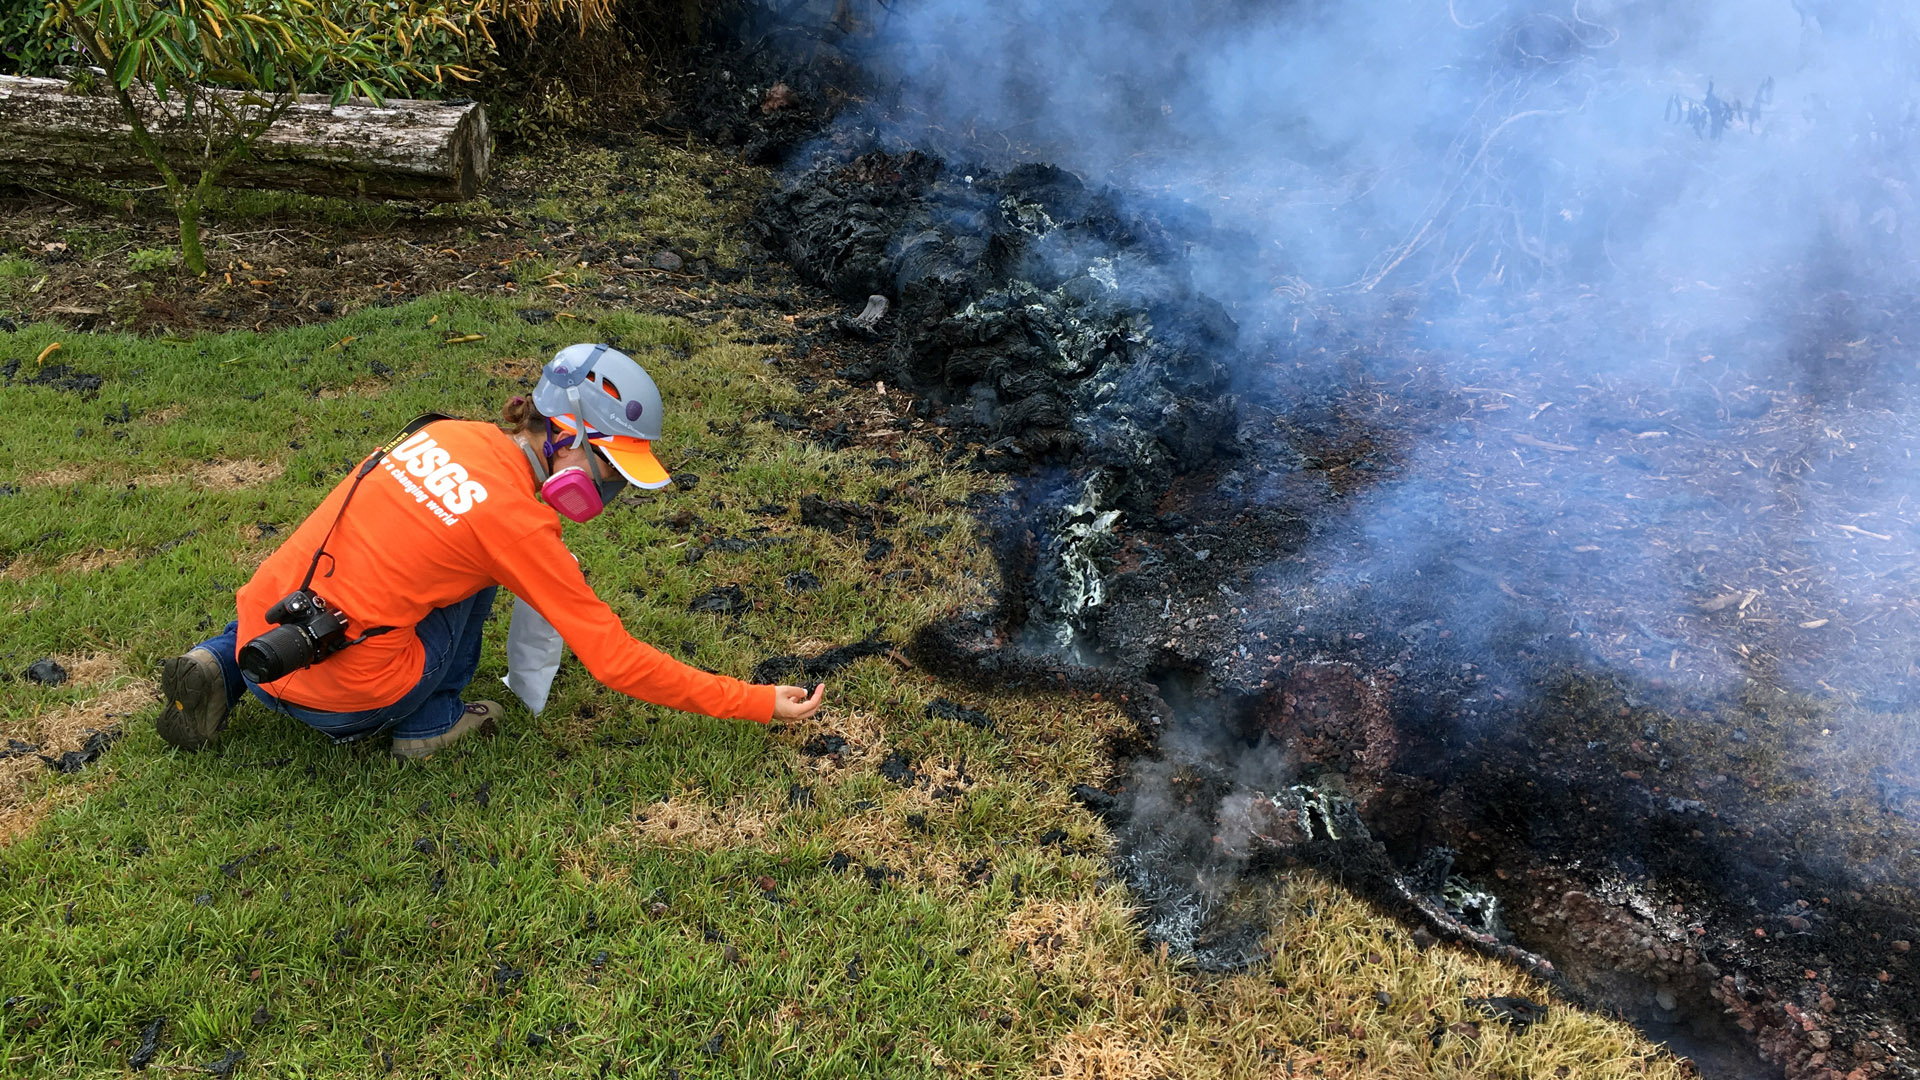 In this handout photo provided by the U.S. Geological Survey, HVO geologists collect samples of spatter for laboratory analysis after the eruption of Hawaii's Kilauea volcano on May 6, 2018 in the Leilani Estates subdivision near Pahoa, Hawaii. (Credit: U.S. Geological Survey via Getty Images)